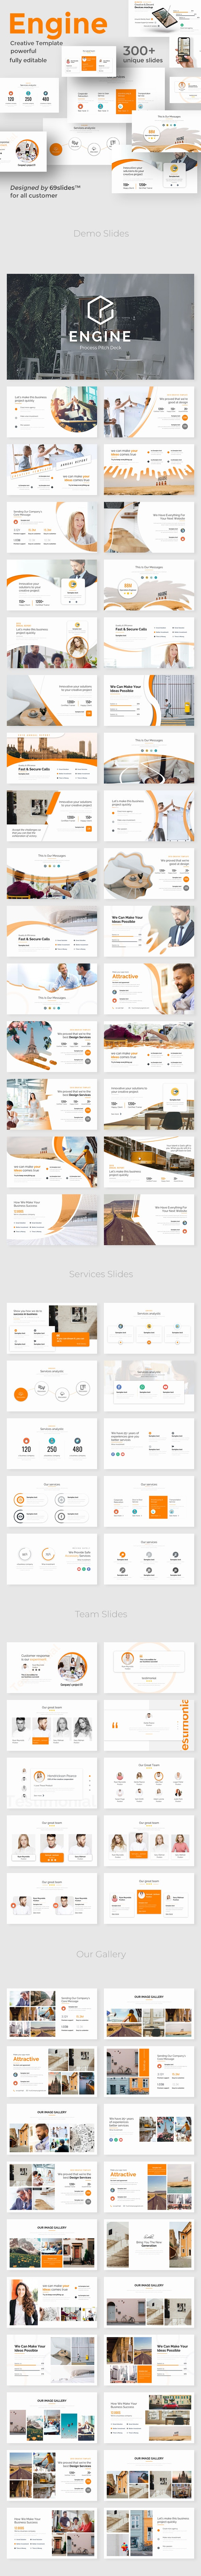 Engine Process Pitch Deck Powerpoint Template - Creative PowerPoint Templates